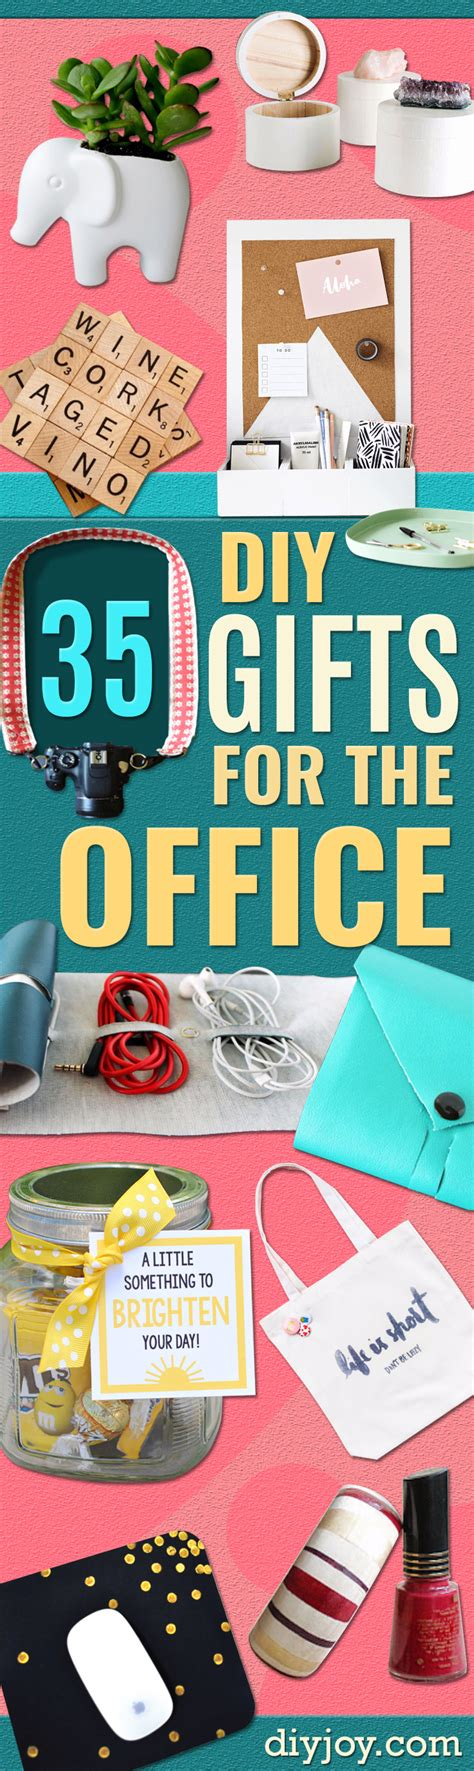 35 cheap and easy gifts for the office diy joy